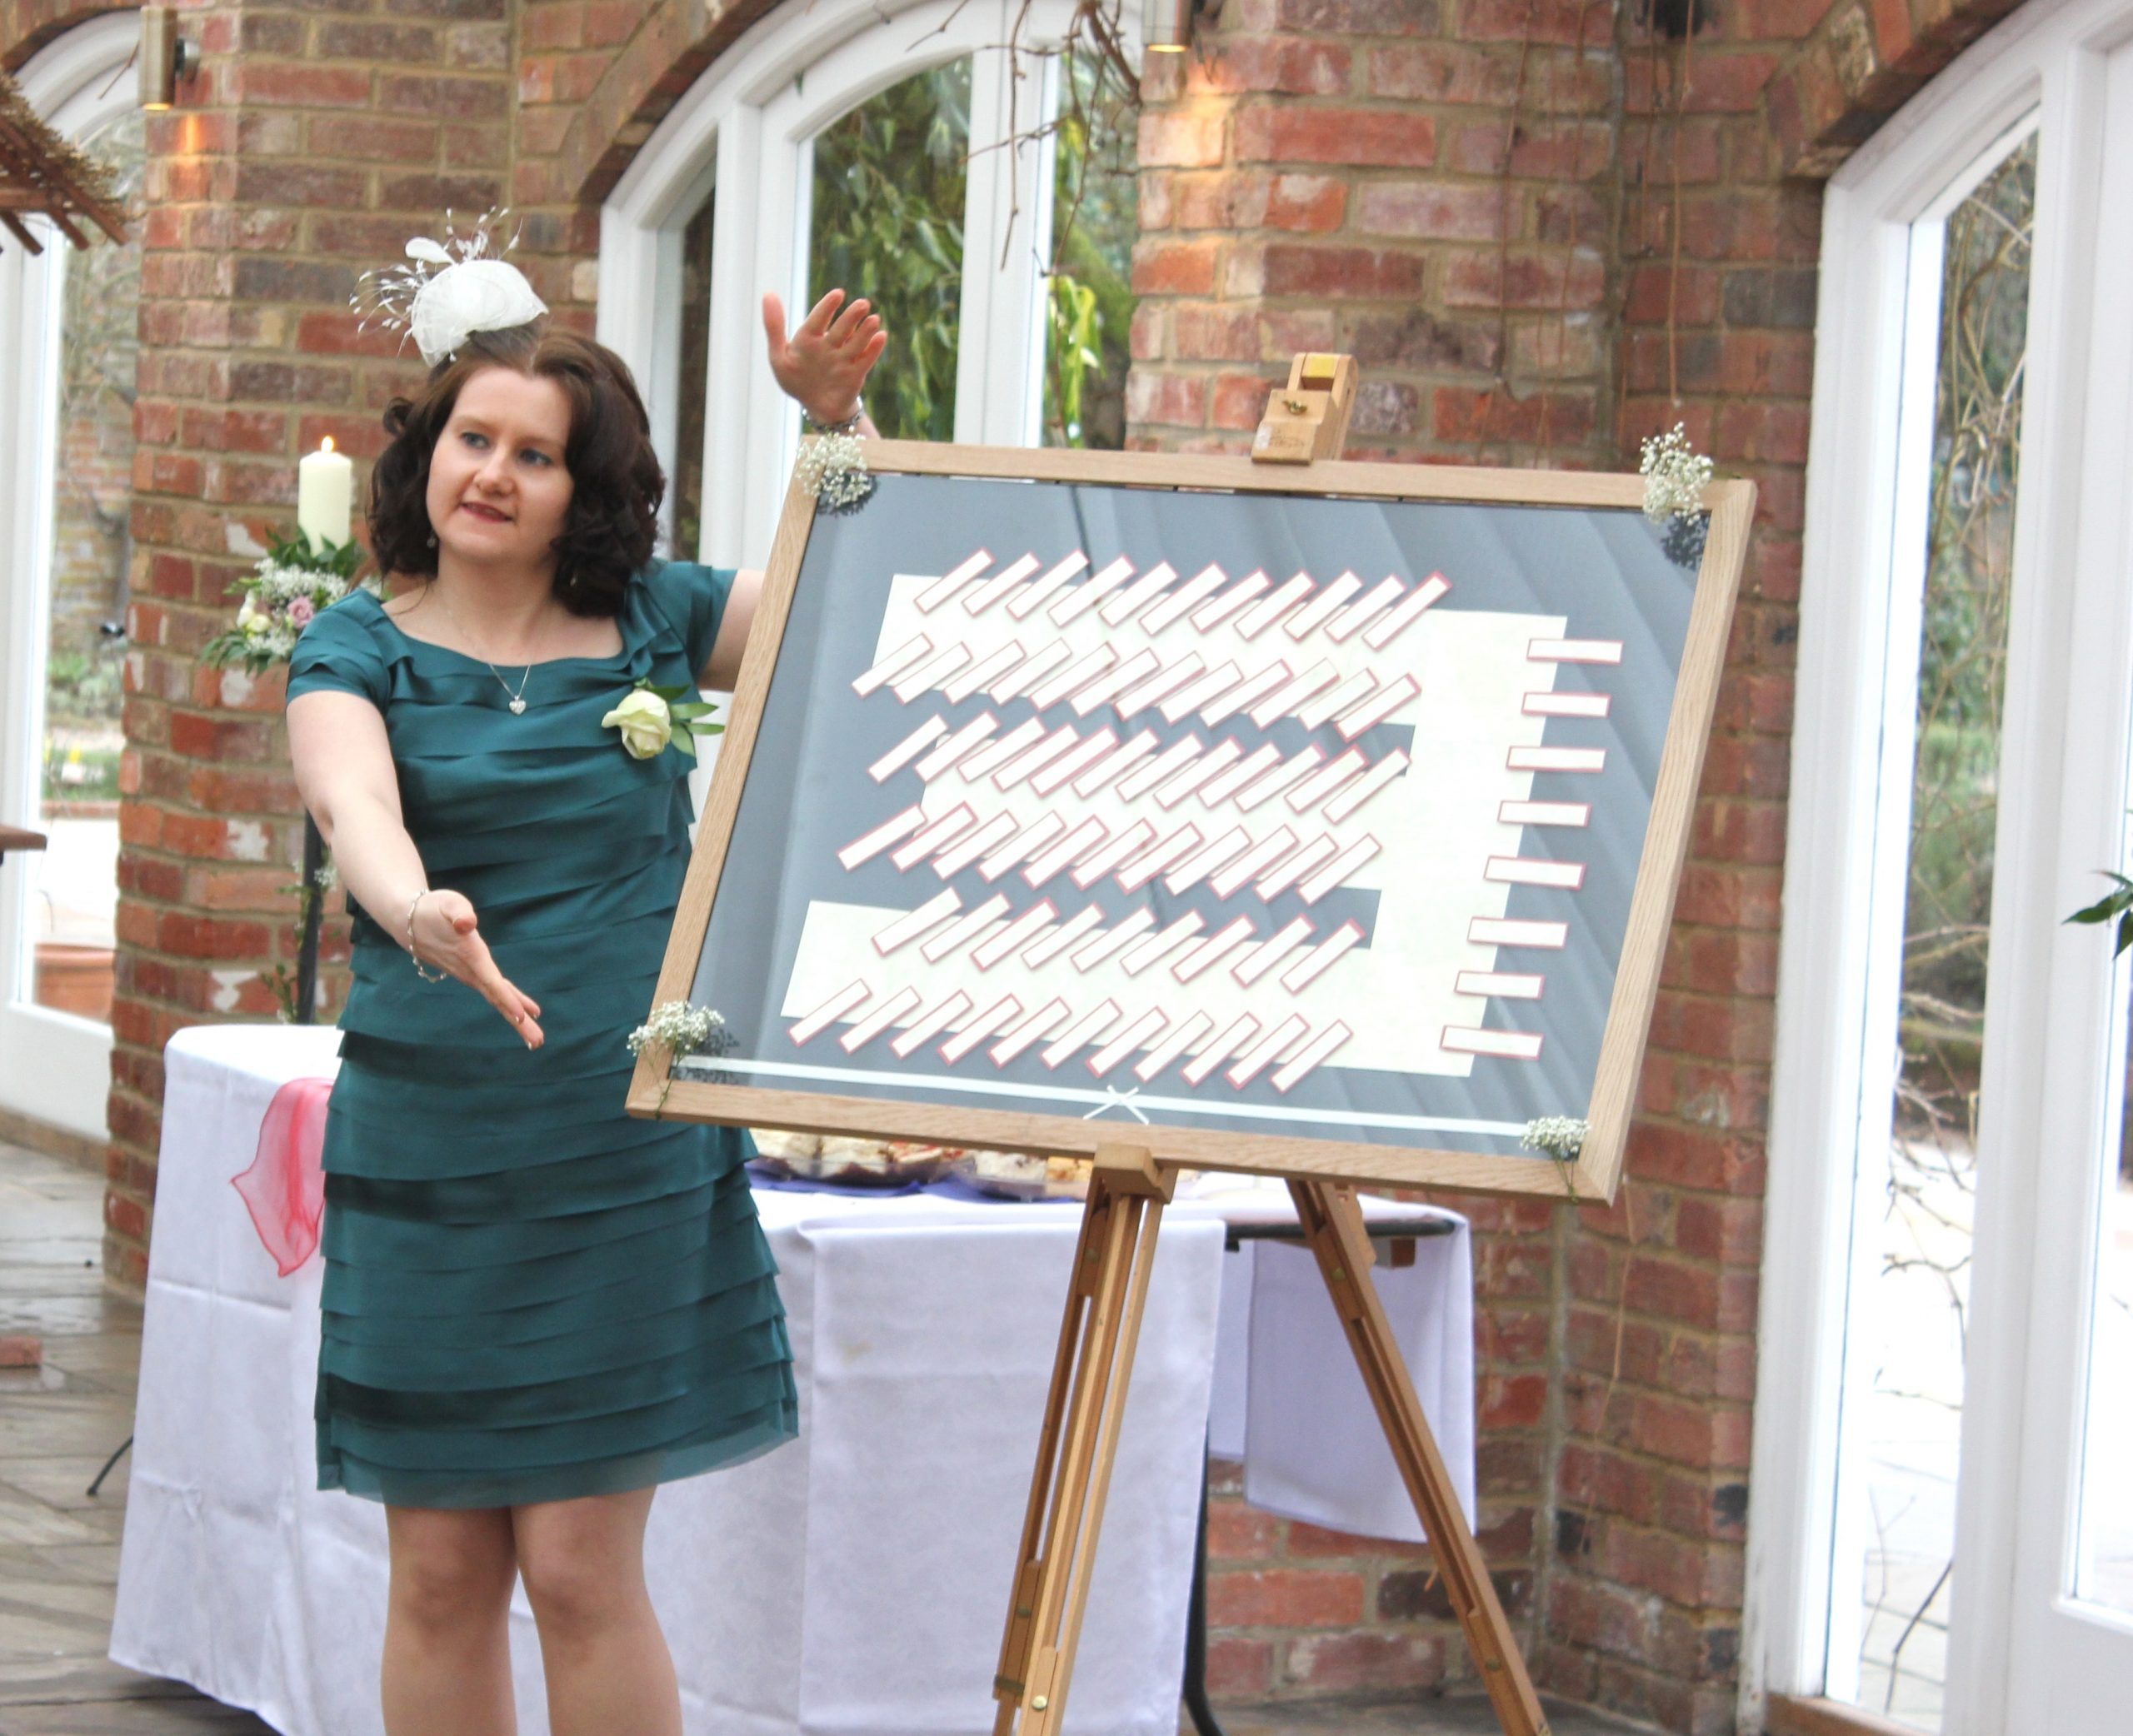 A lady in a green dress draws the attention of the wedding guests to the tableplan.